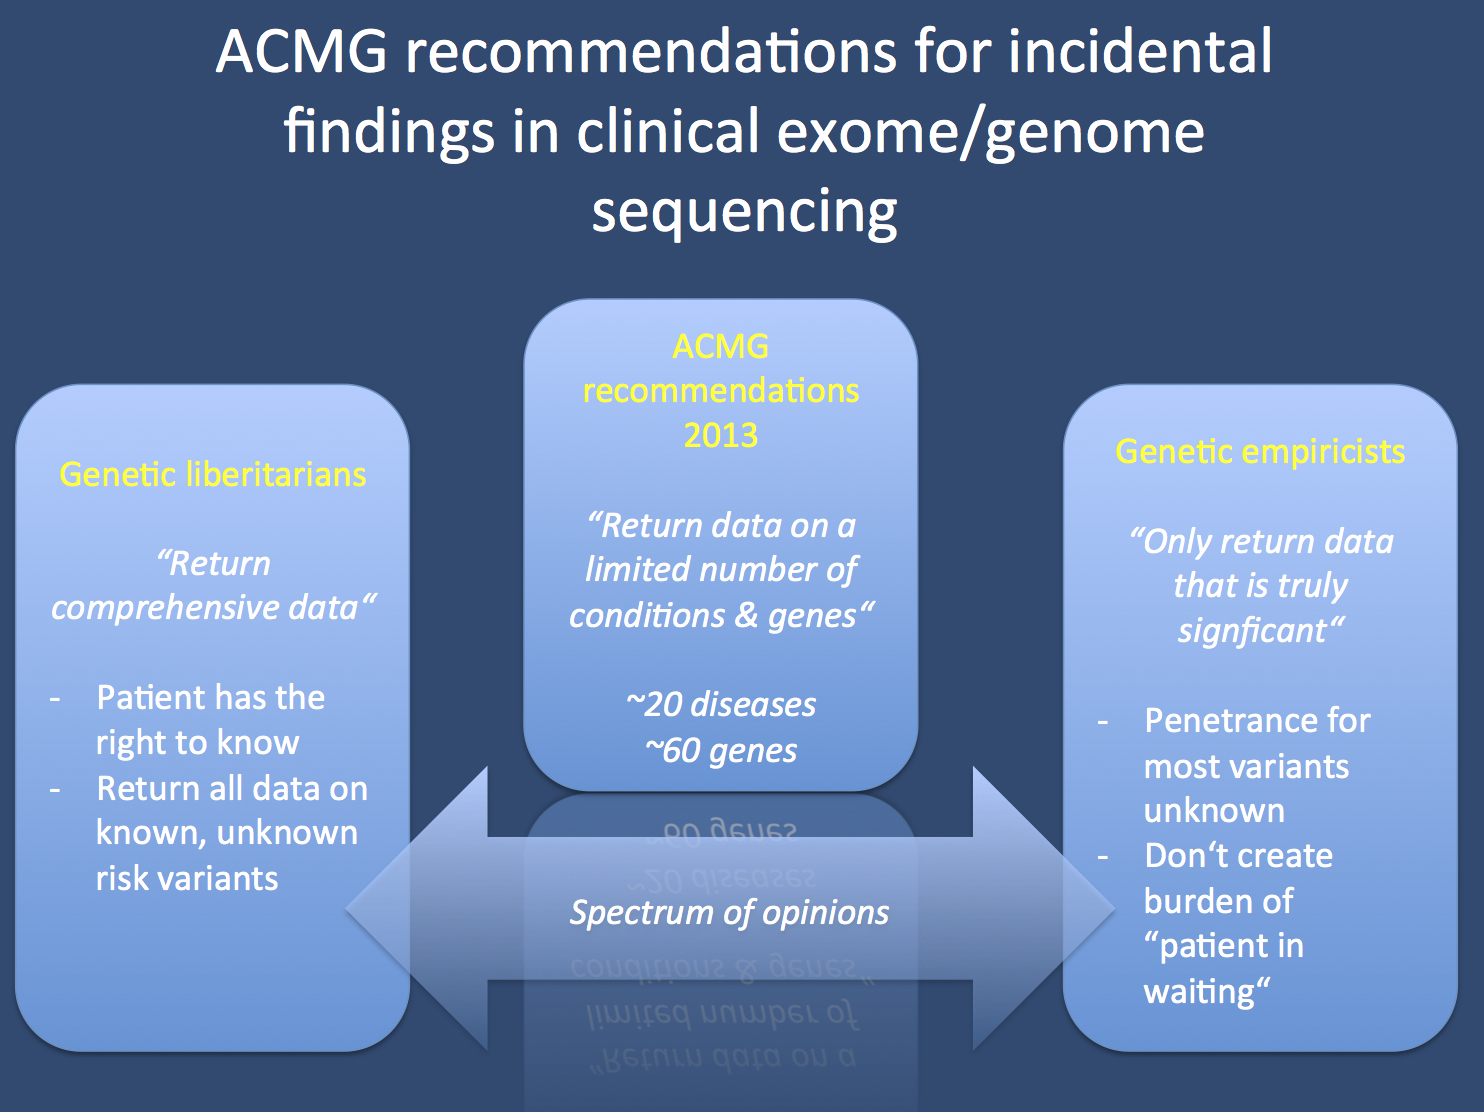 "The ACMG recommendations try to find a middleground between the two extreme opionions relating the data return on incidental genomic findings. On the one hand, genetic liberitarians suggest that incidental findings should be returned even for variants with unknown significance as patients are entitled to know about these findings. On the other hand, genetic empiricists suggest that little is known about the penetrance of pathogenic mutations on the population level and that a liberal return of incidental findings places a high burden on individuals, turning them into ""patients in waiting""."